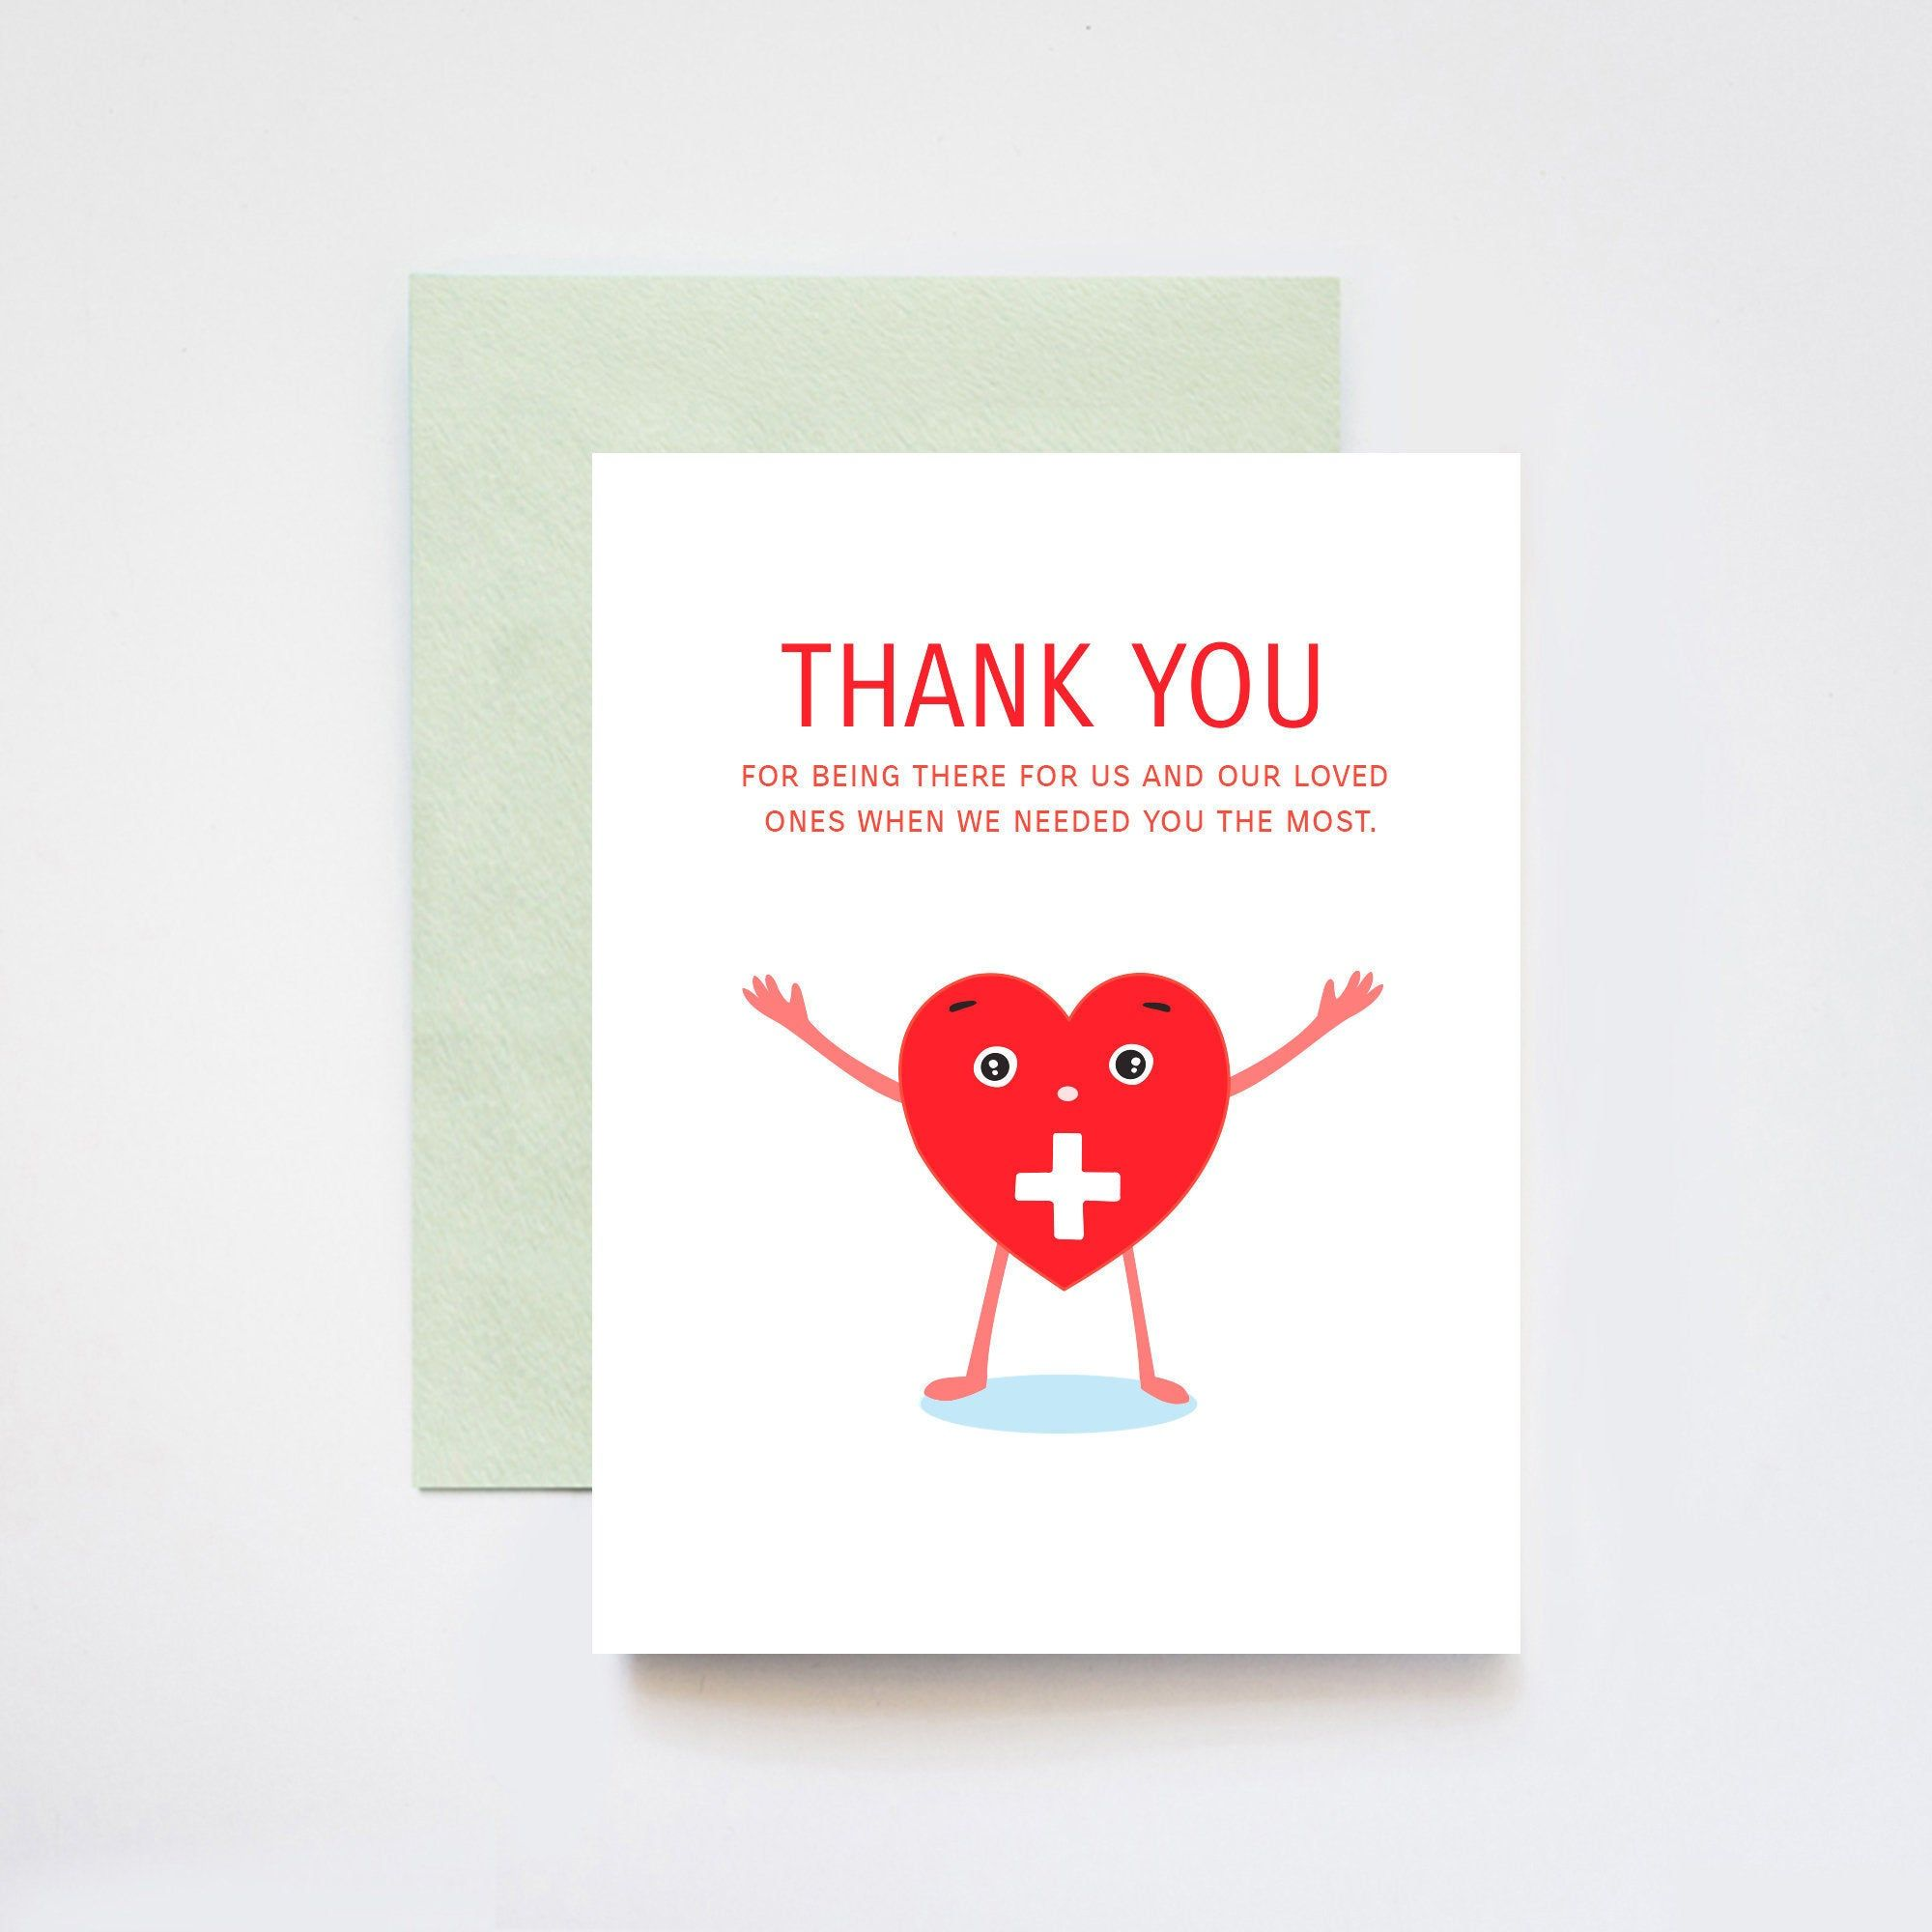 Healthcare Workers Doctors Nurses Frontline Workers Heartfelt Thank You A2 Greeting Card Mint Envelopes Folded Cards Cards